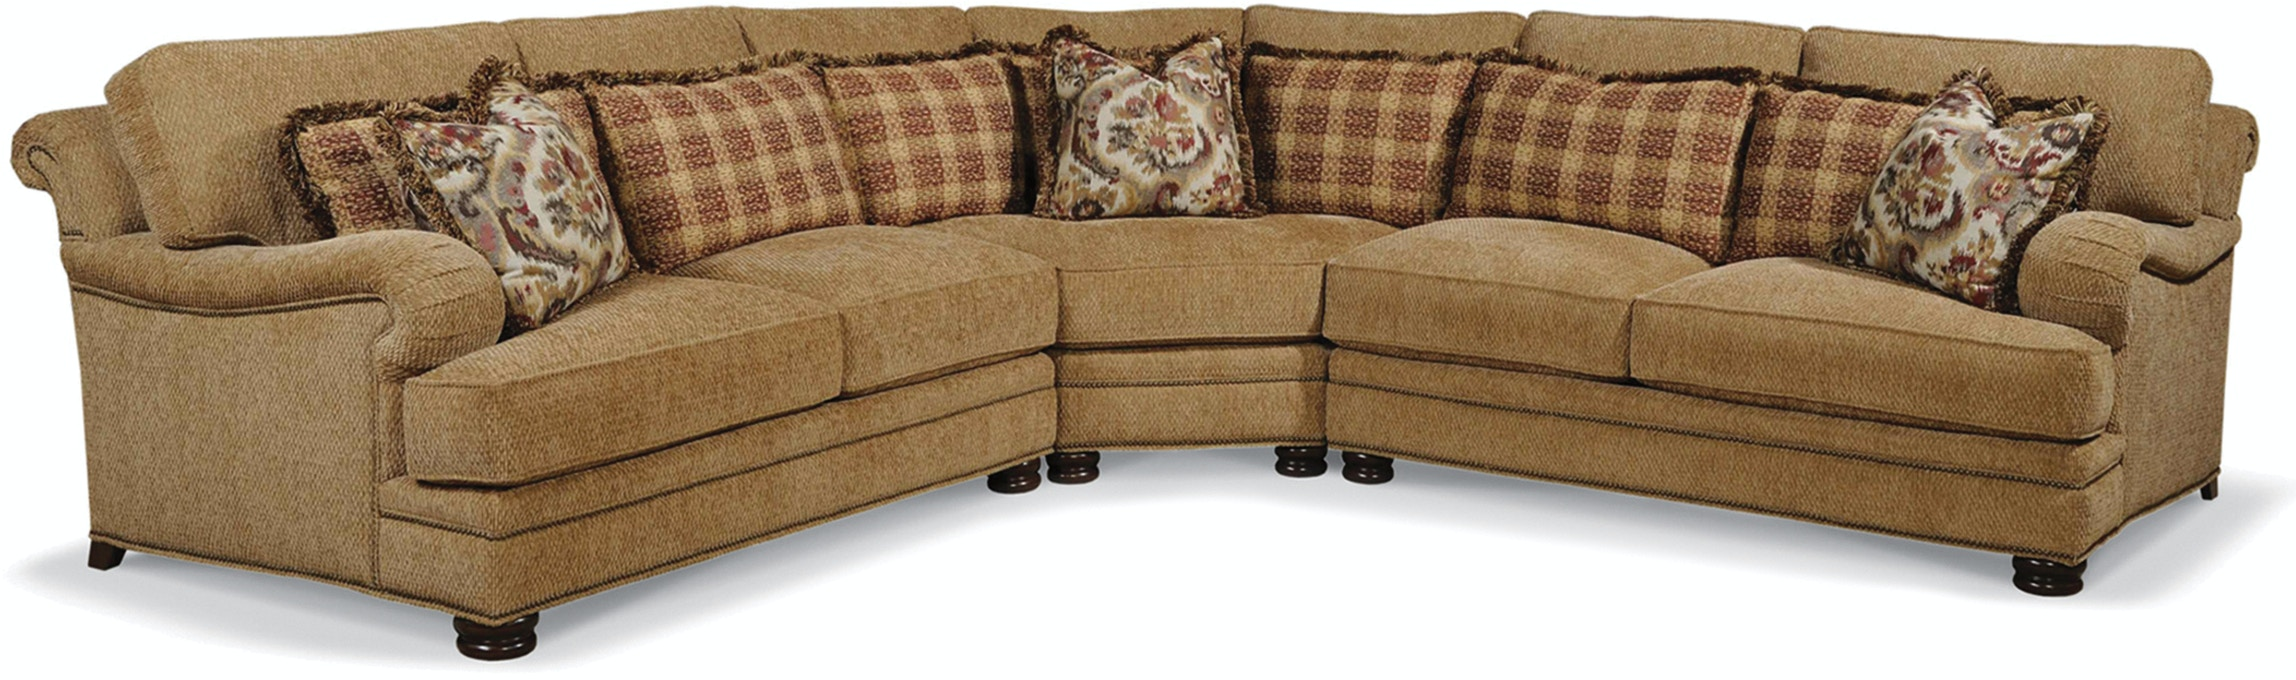 Taylor King Furniture Living Room AMBRIDGE SECTIONAL 8912